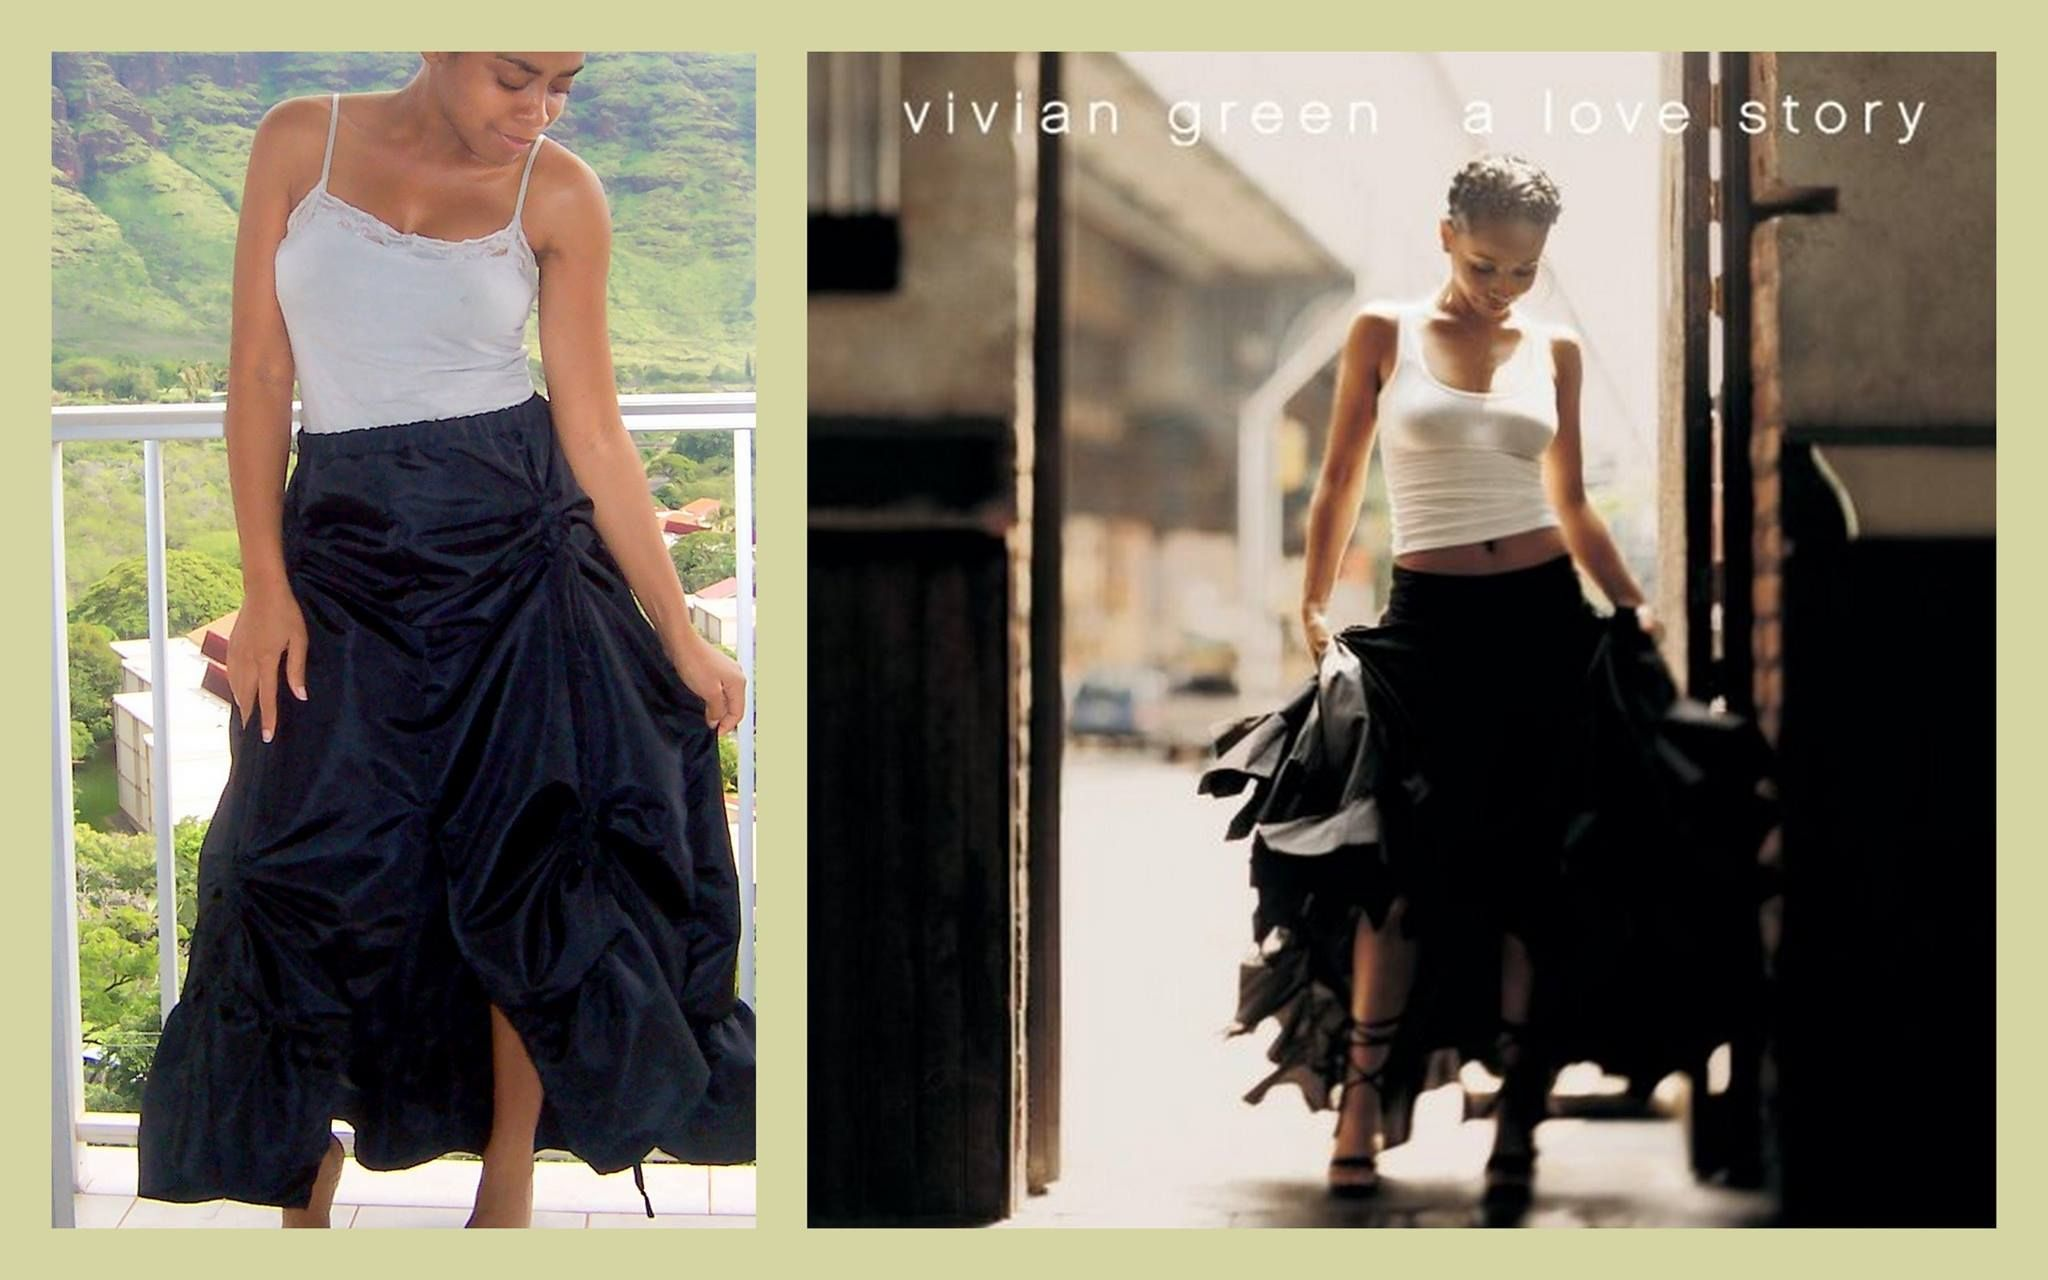 Customized ruched skirt (and a comparison to my favorite vivian green photo)! Read more at https://www.facebook.com/flytieclothing/photos/a.10150202808630301.434467.36931525300/10153886465775301/?type=1&theater